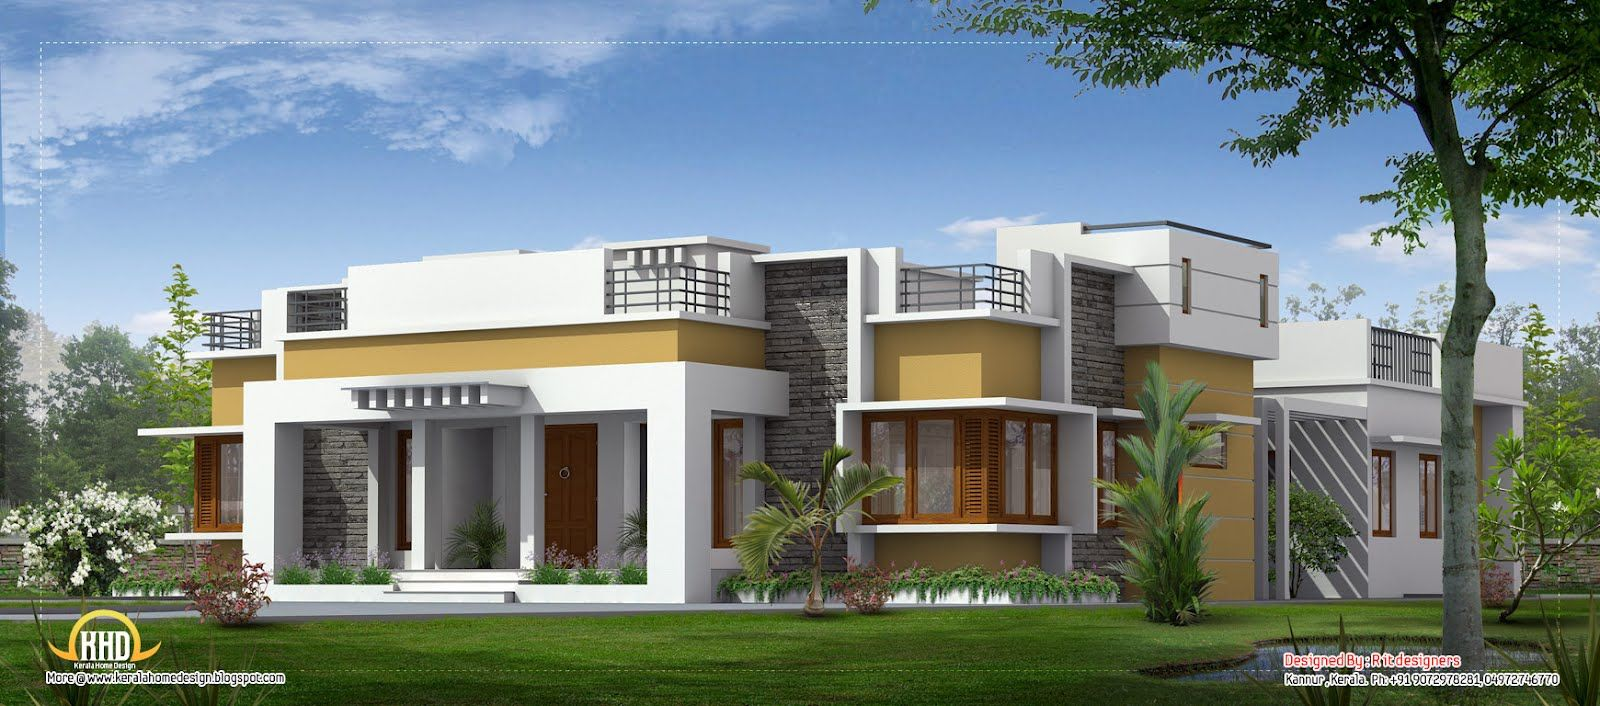 single level designer home single floor house plans - Single Floor House Plans